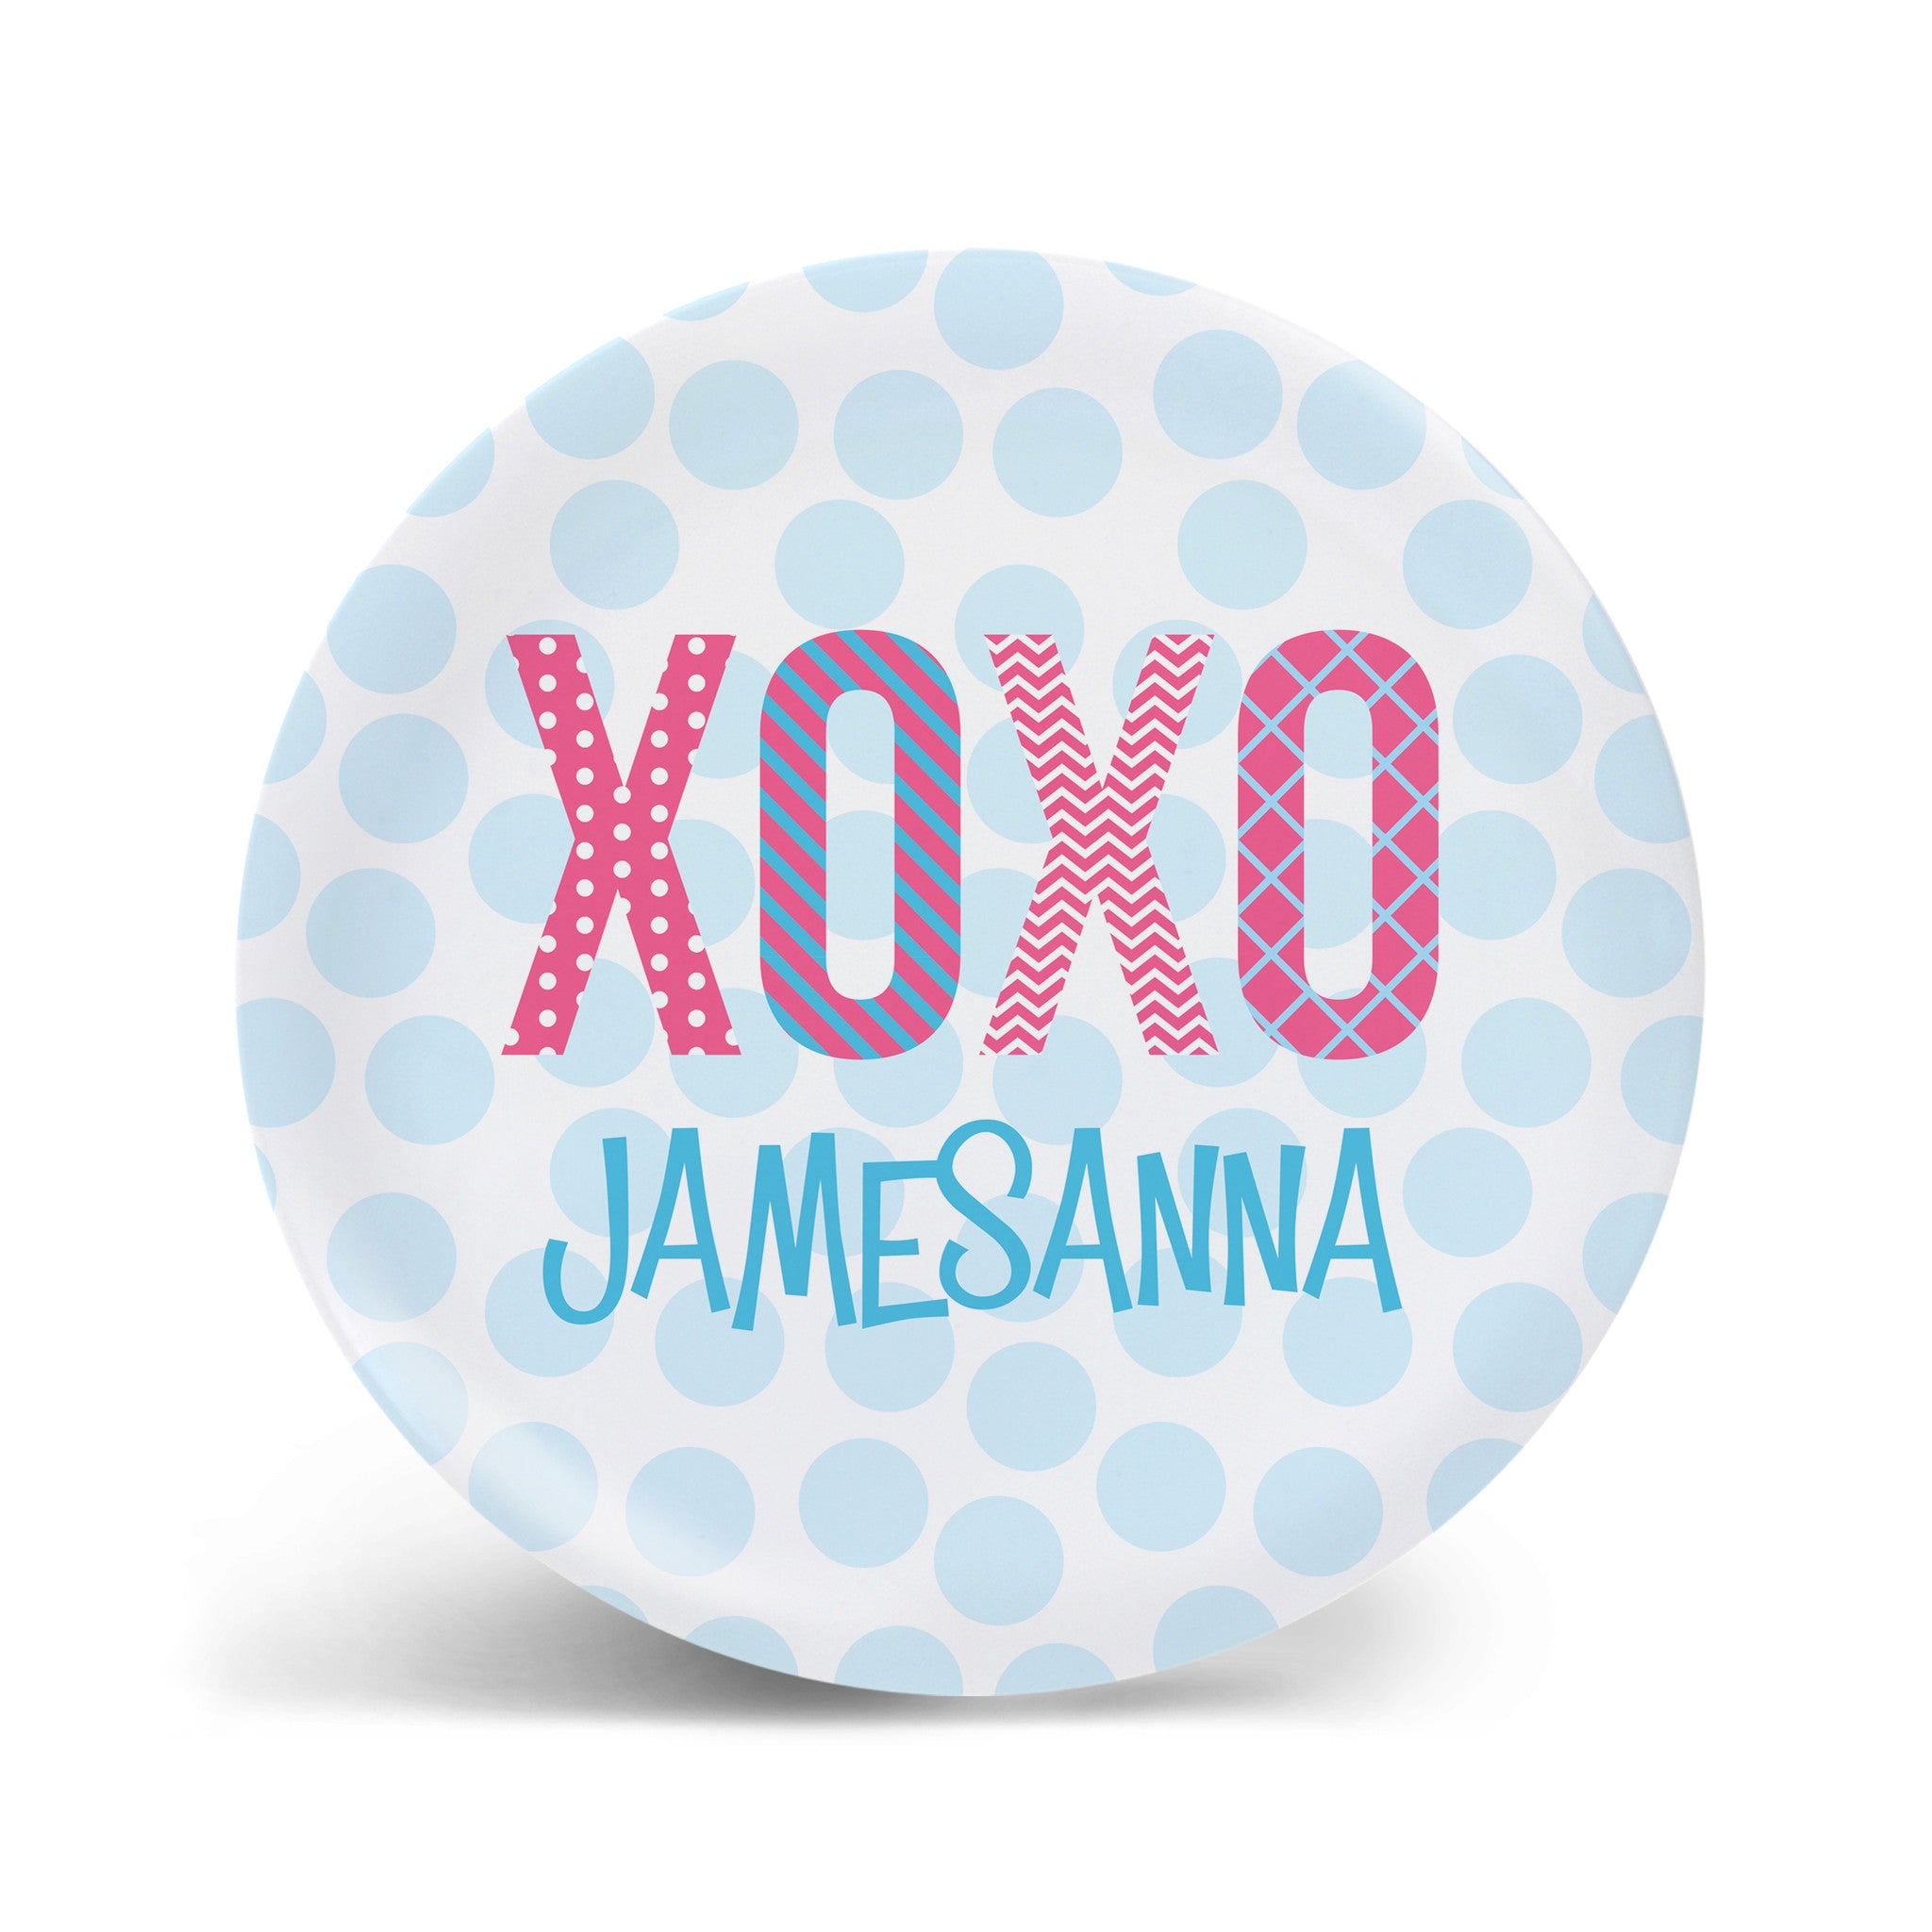 XOXO Valentines Plate - 2 styles!